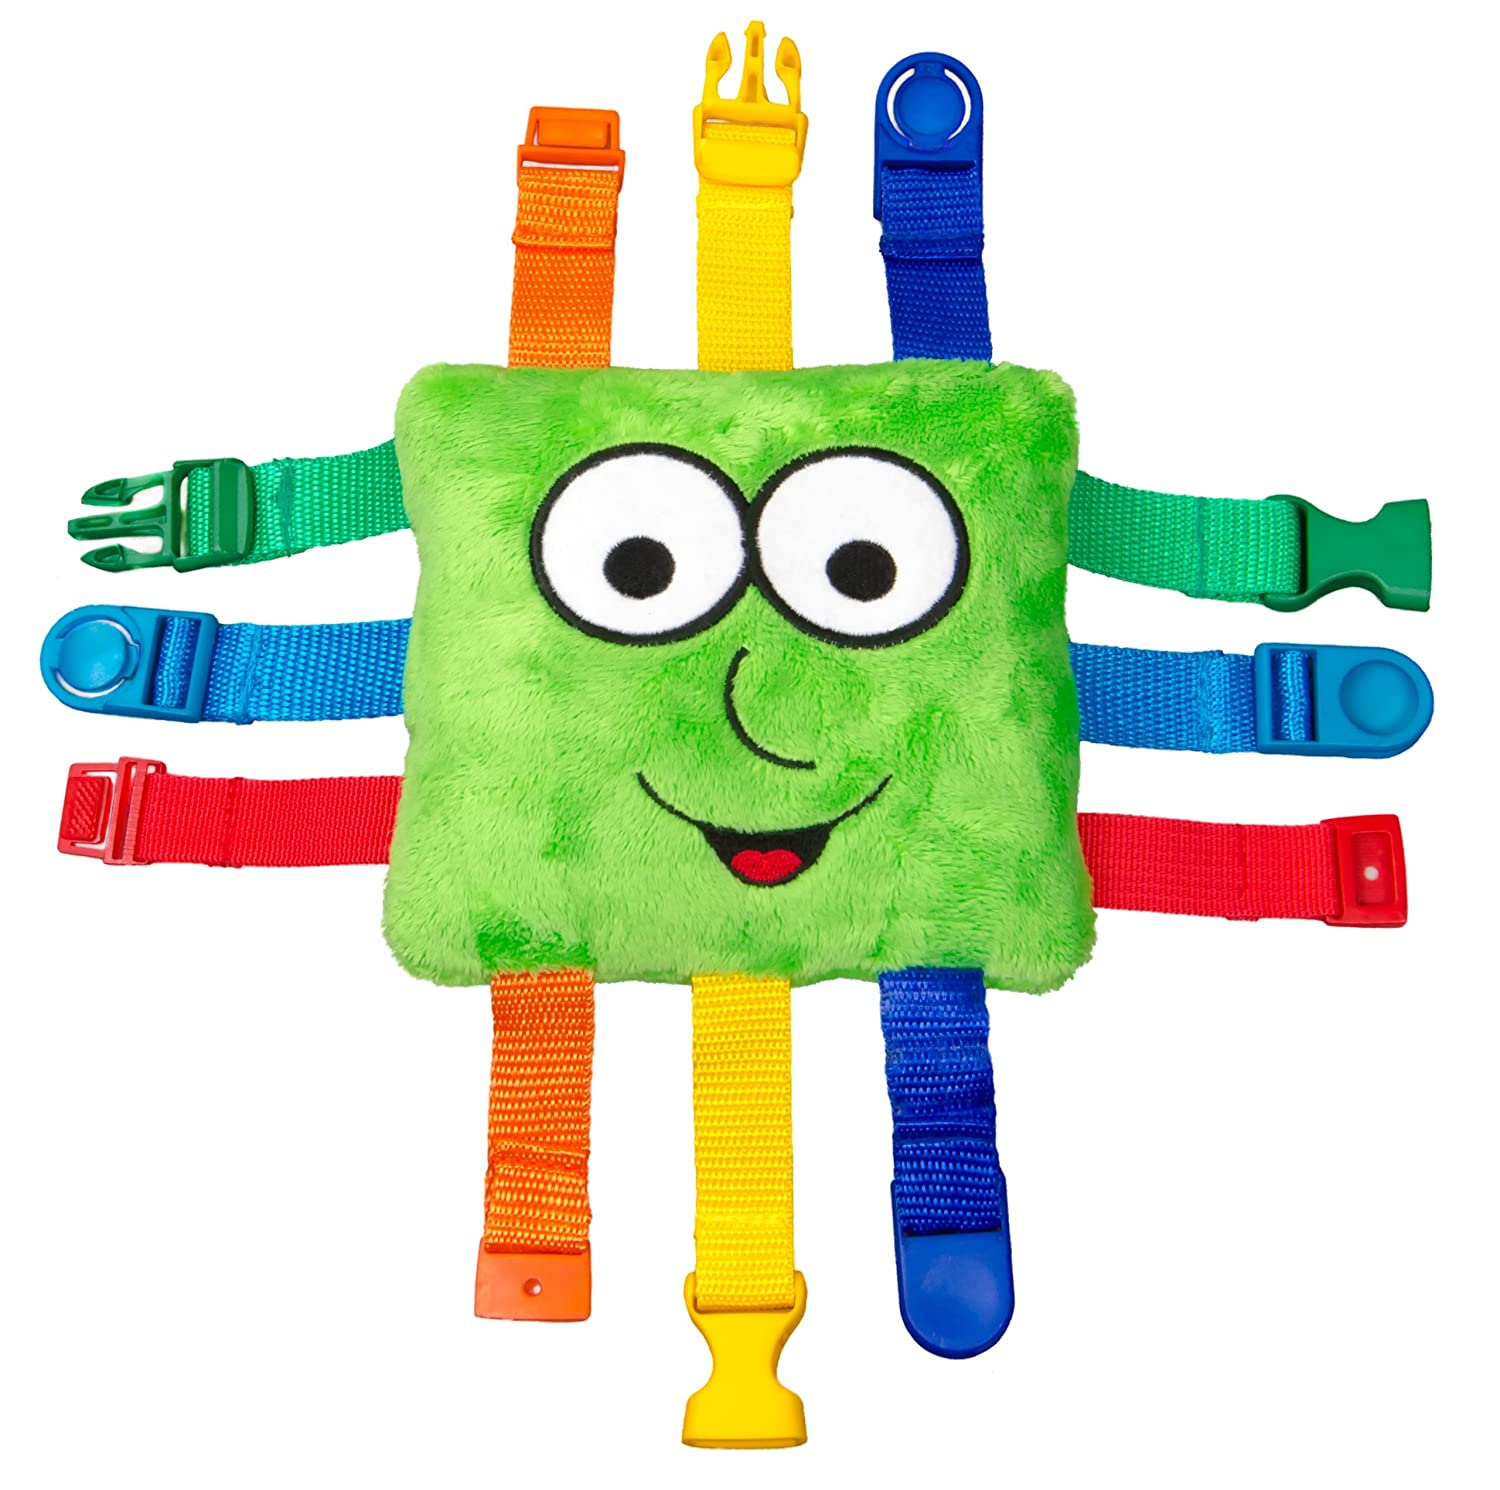 BUCKLE TOY Buster – Toddler Early Learning Basic Life Skills Children's Plush Travel Activity Buckle Toy Inc Buster the Square